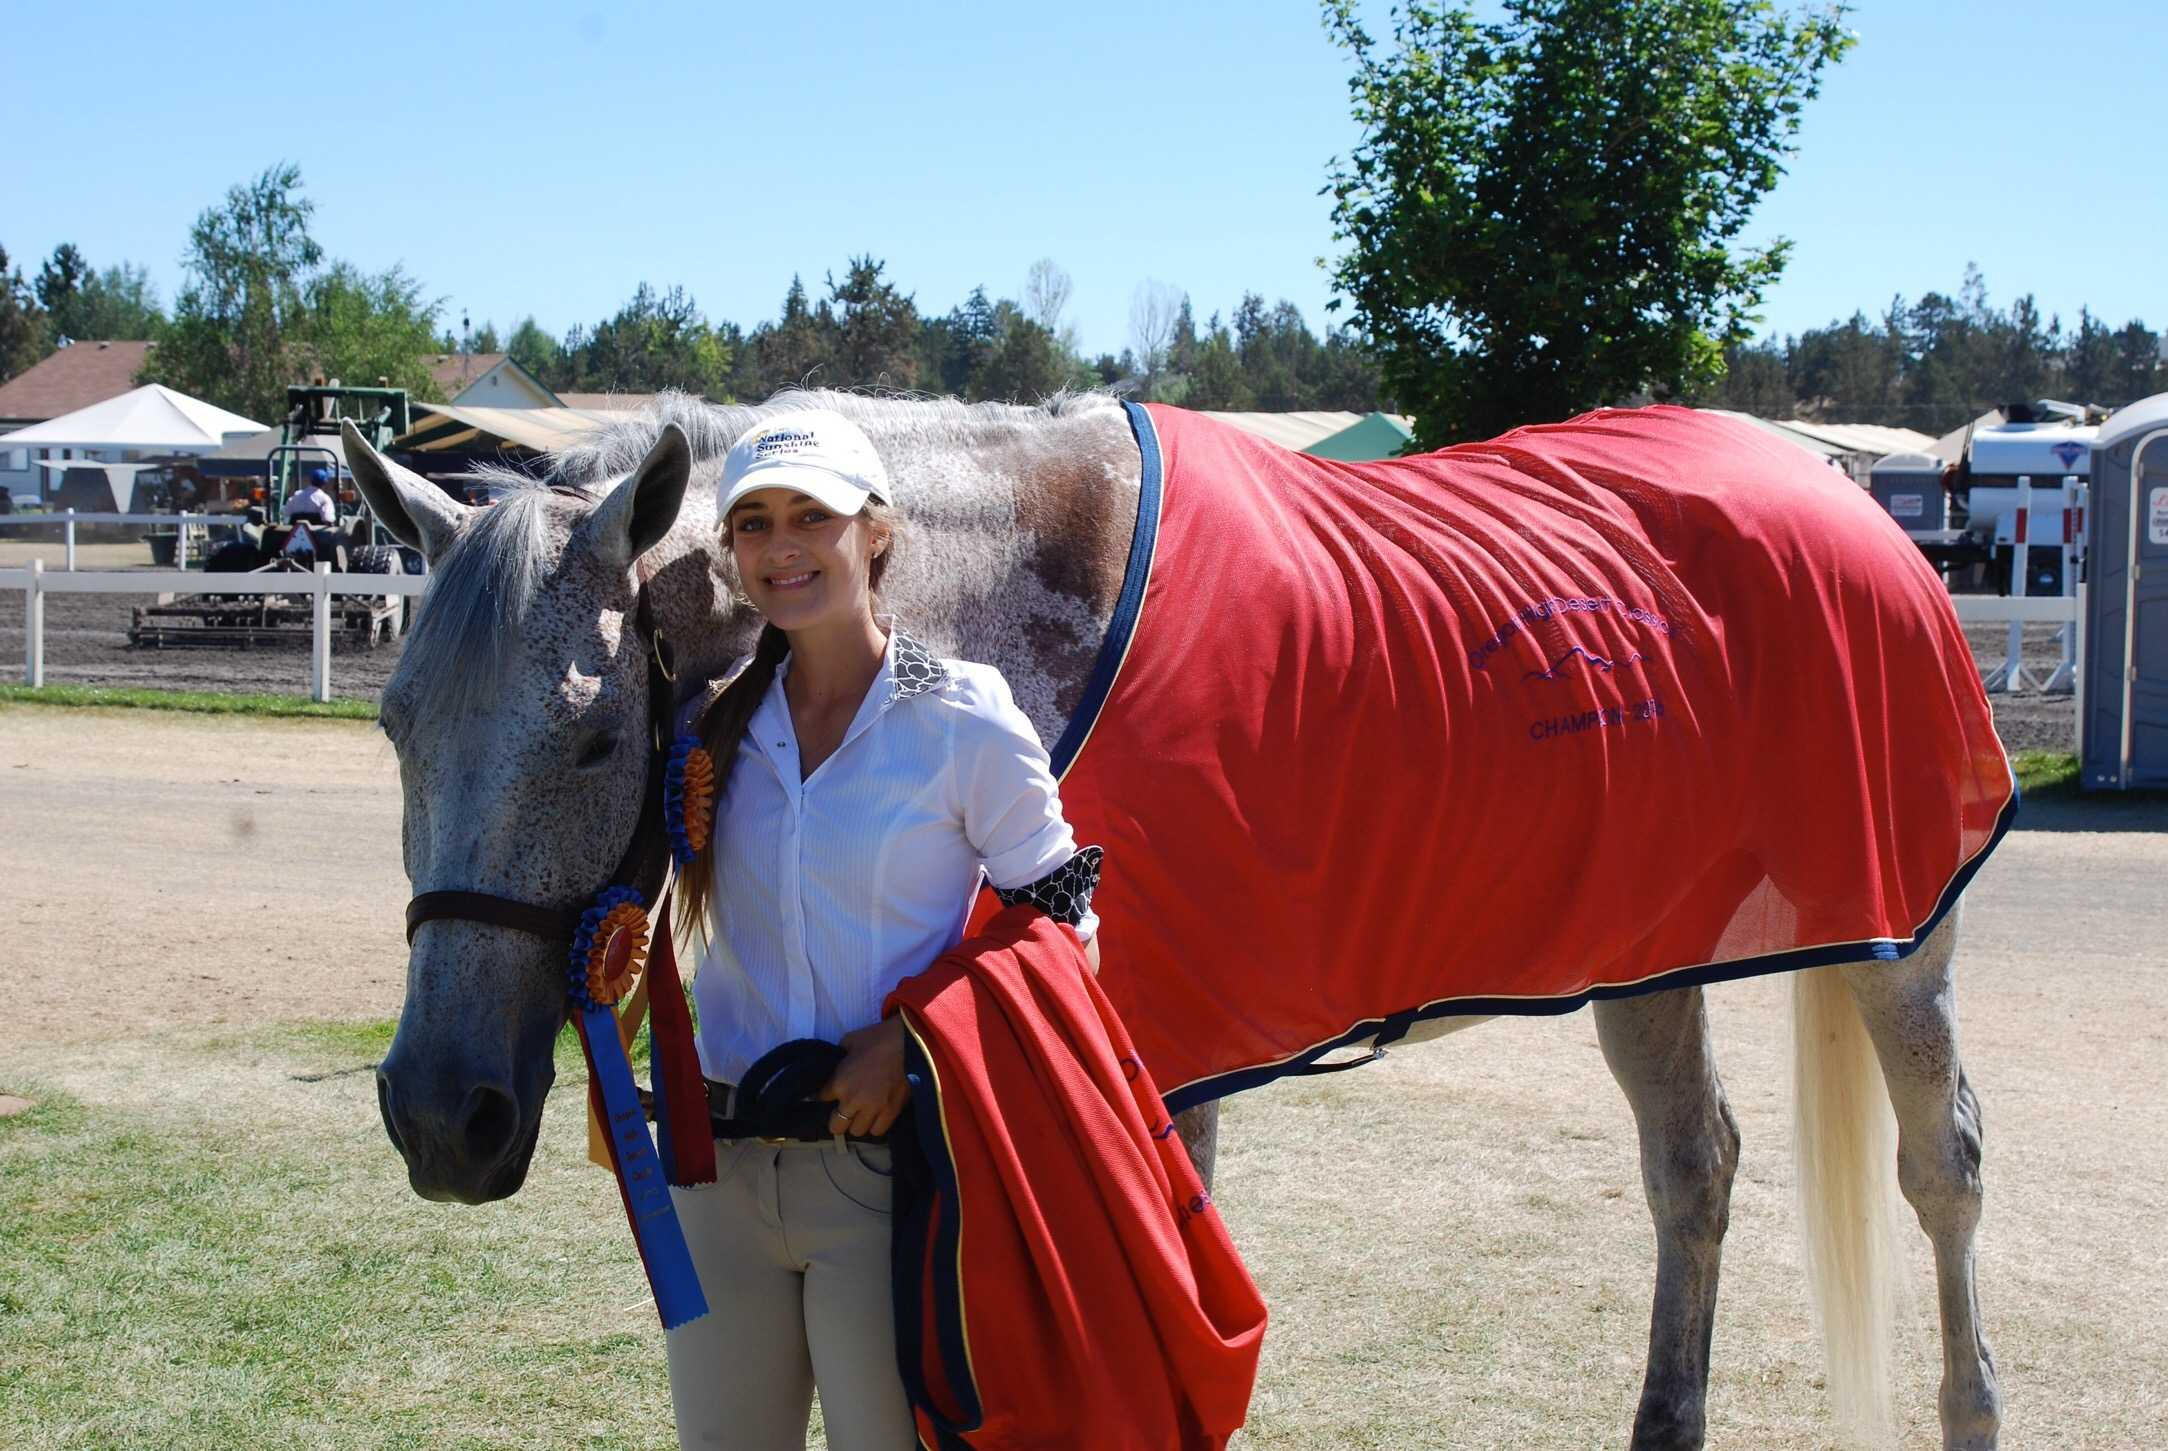 Kelsey Sarracino poses at a tournament with her horse, Kai.  She bought him this past spring in Canada. (Courtesy of John Sarracino)